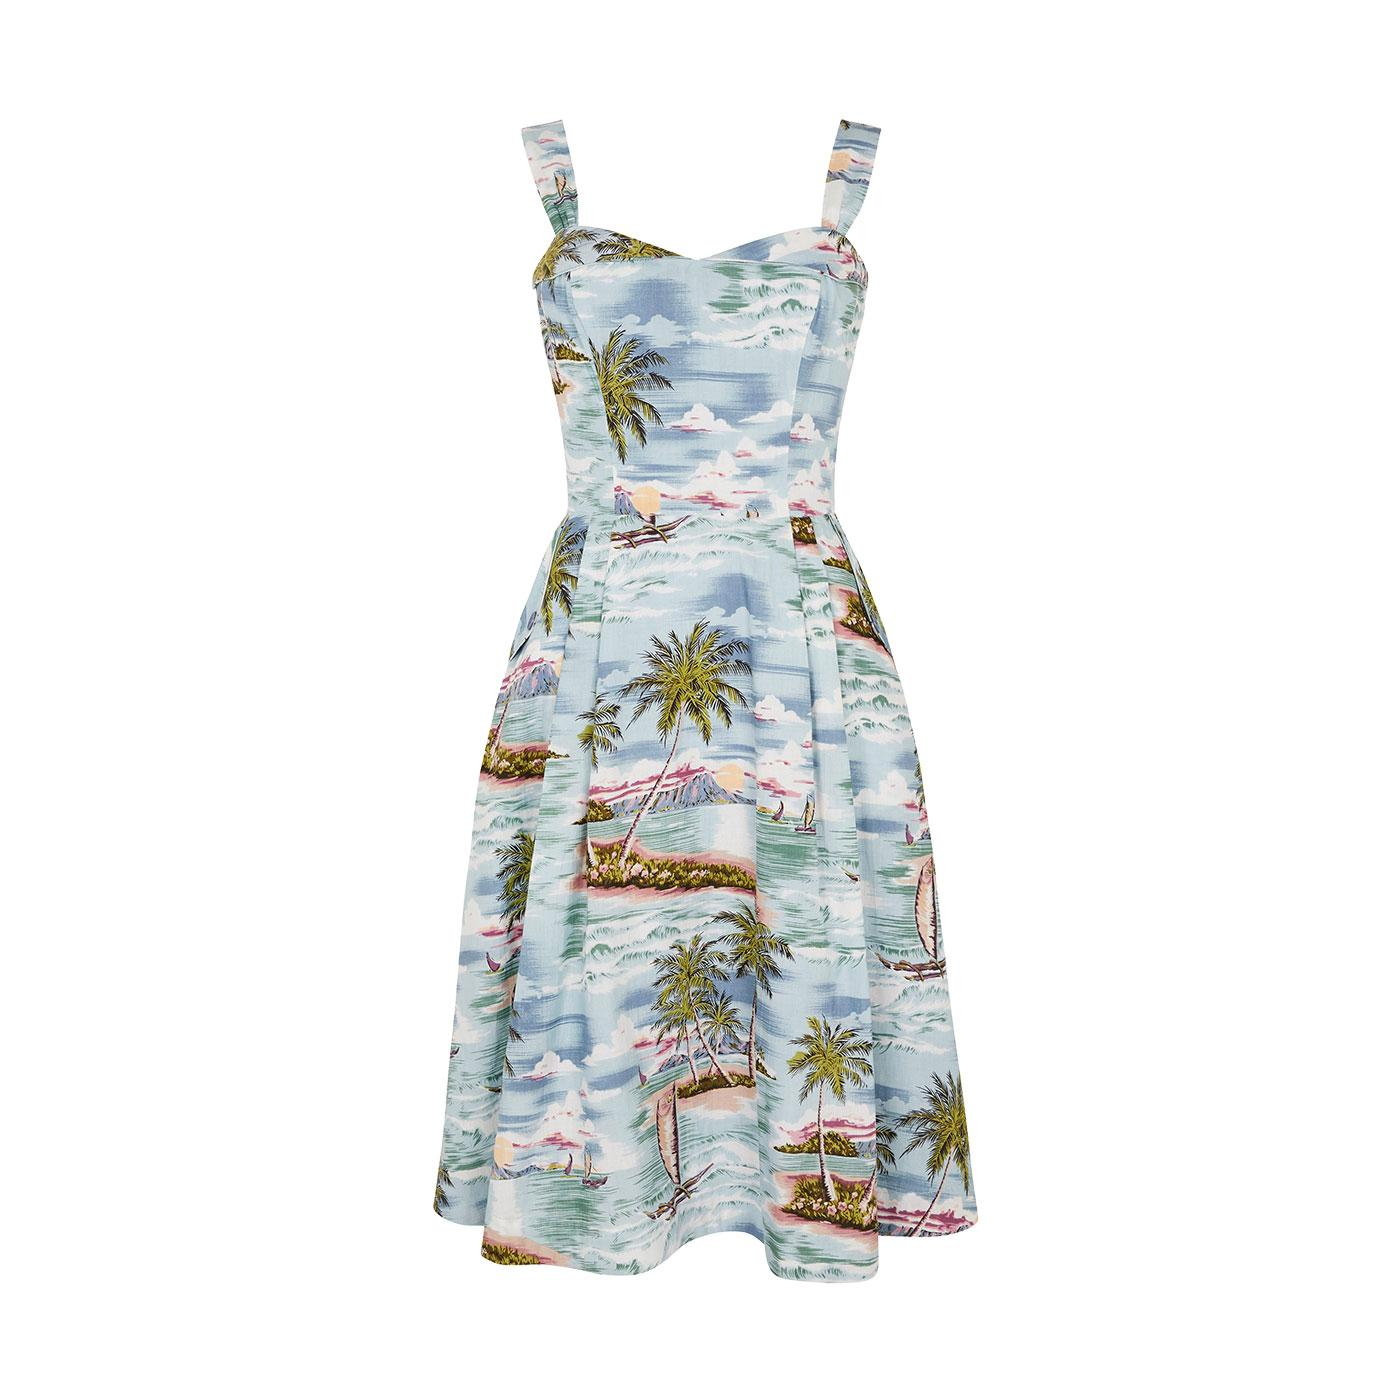 Pippa EMILY & FIN Pacific Island Paradise Dress